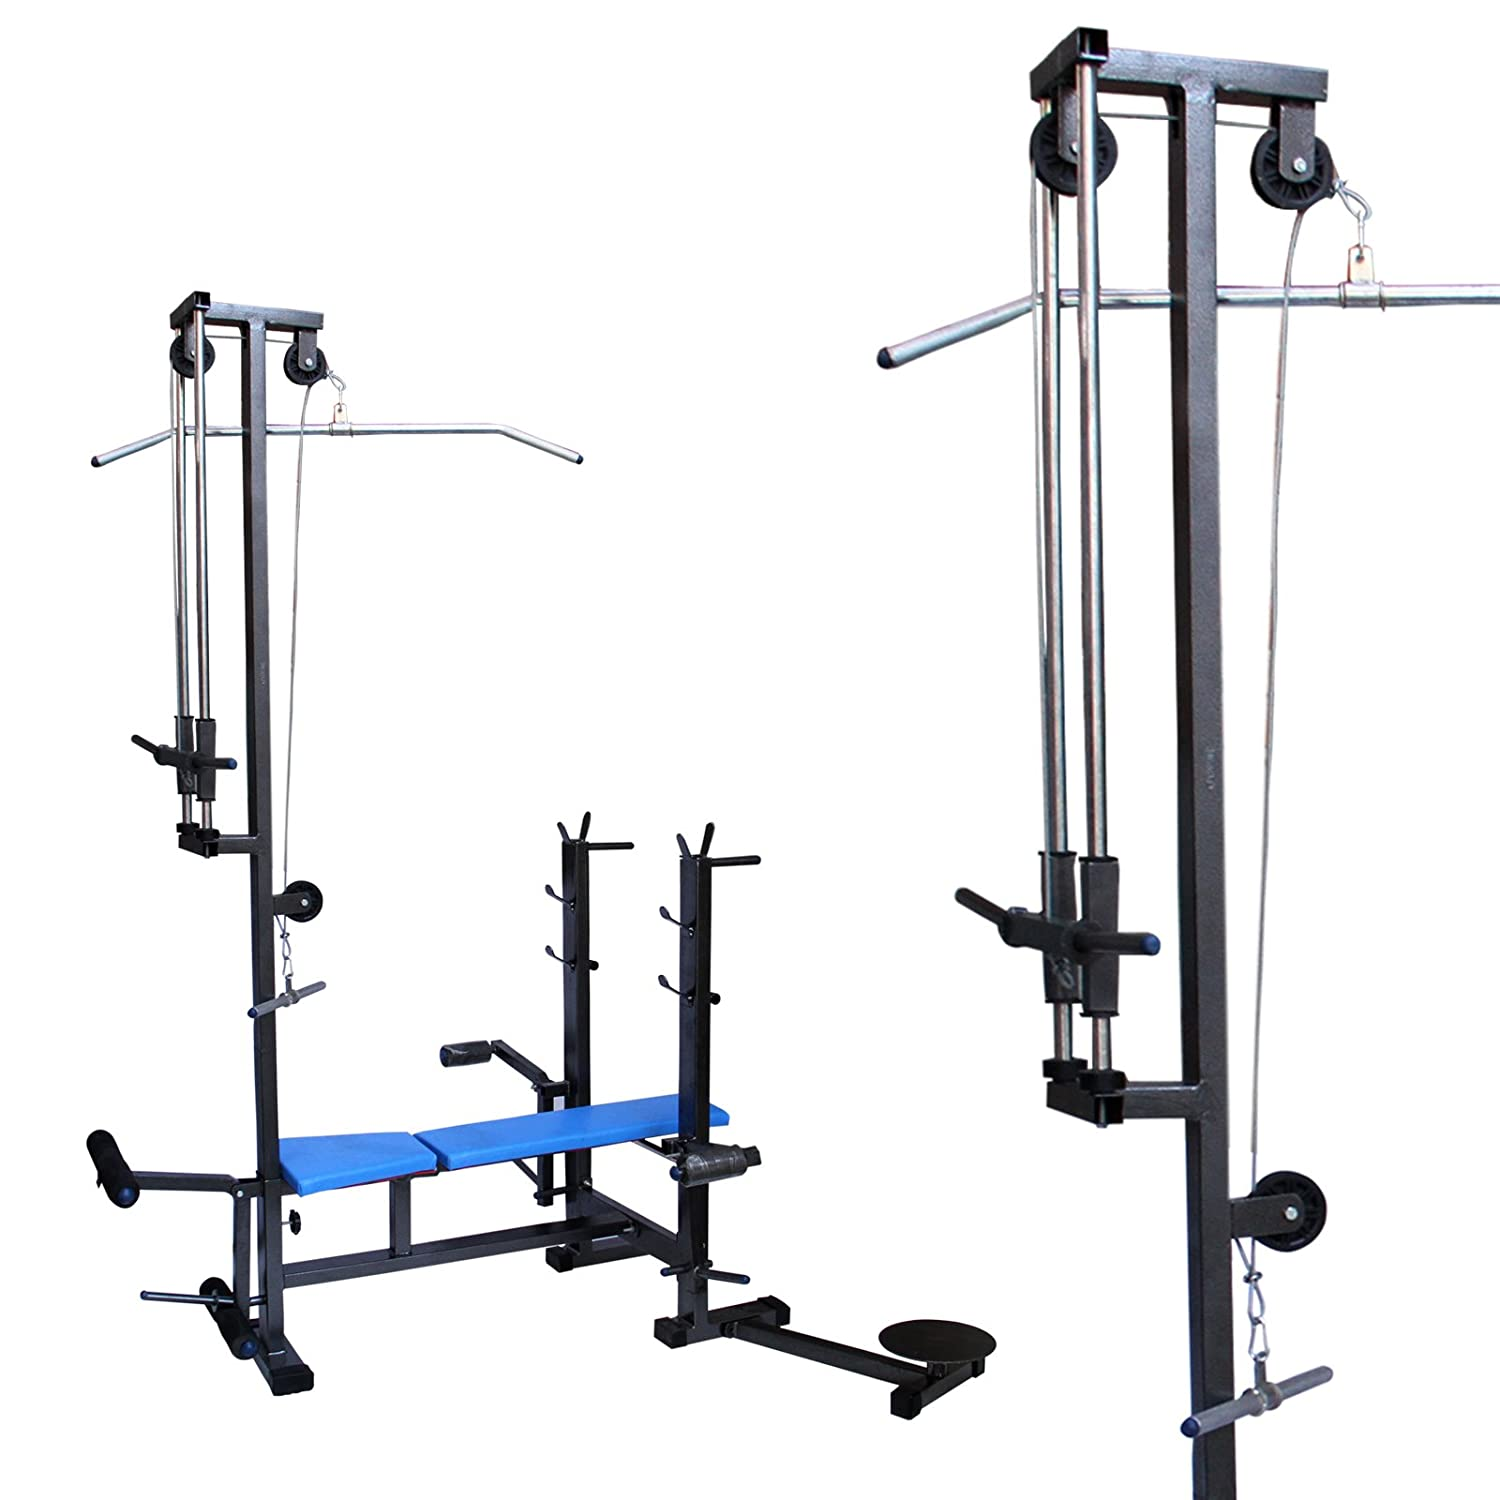 weight bench rebel pro sale workout torros lifting for